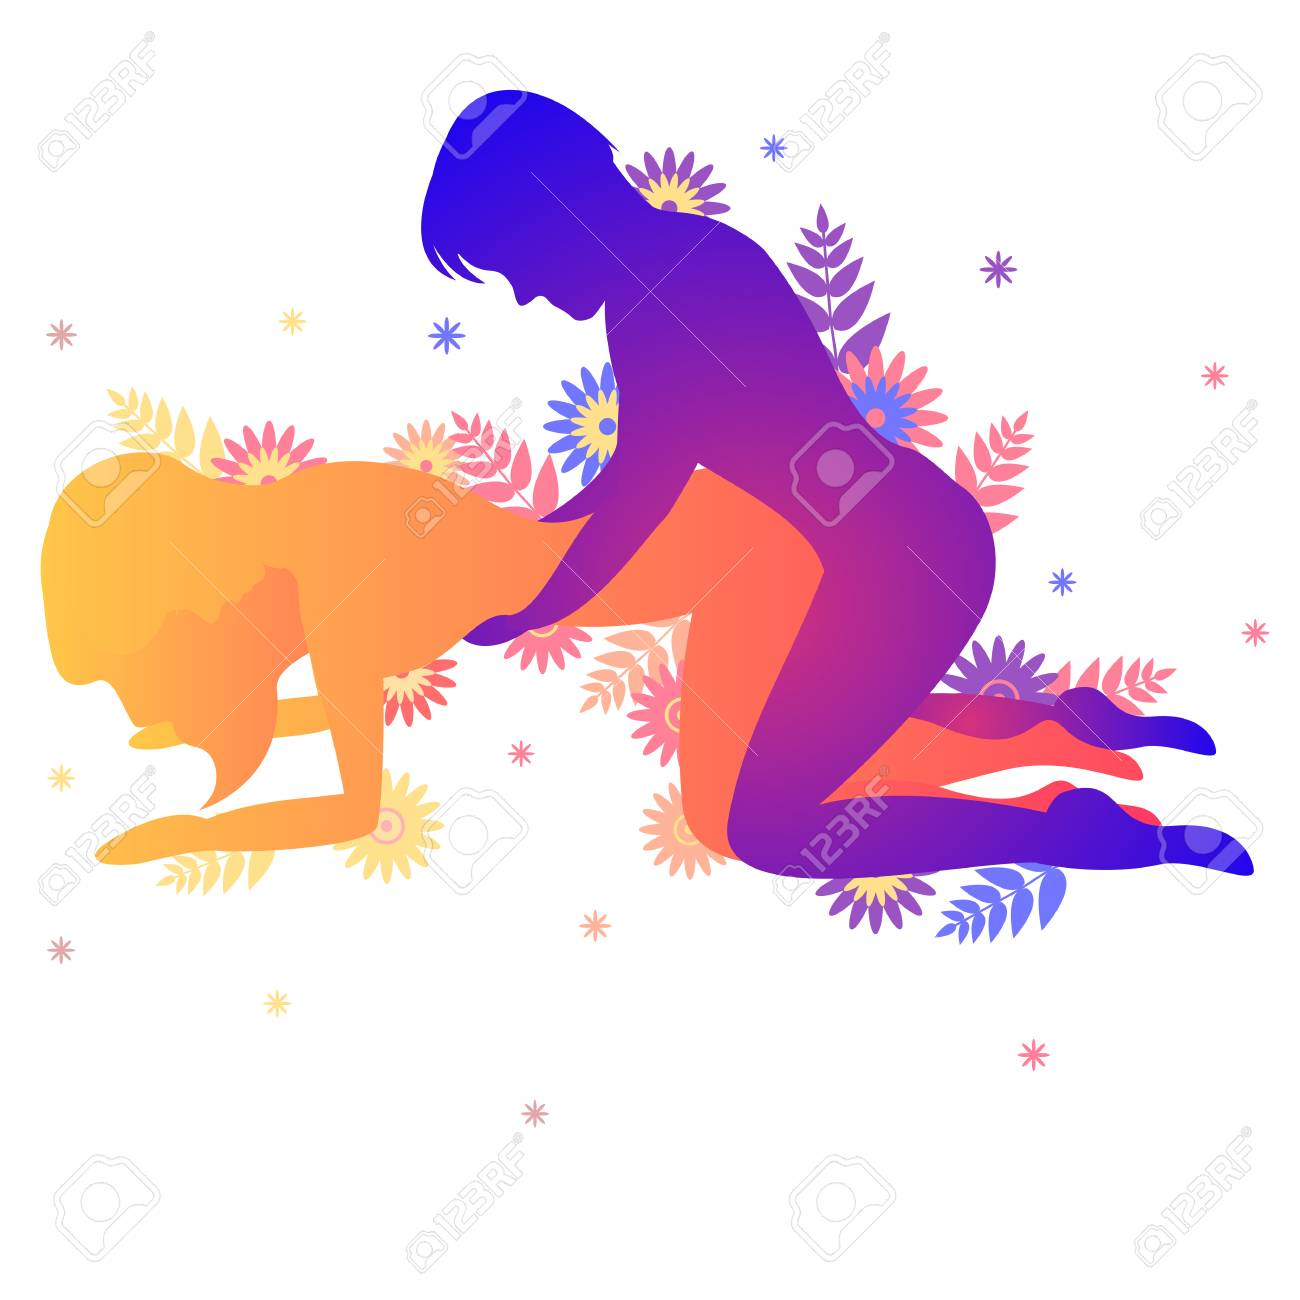 Kama sutra pose The Hound. Man and woman on white background doing poses illustration with flowers - 106444864